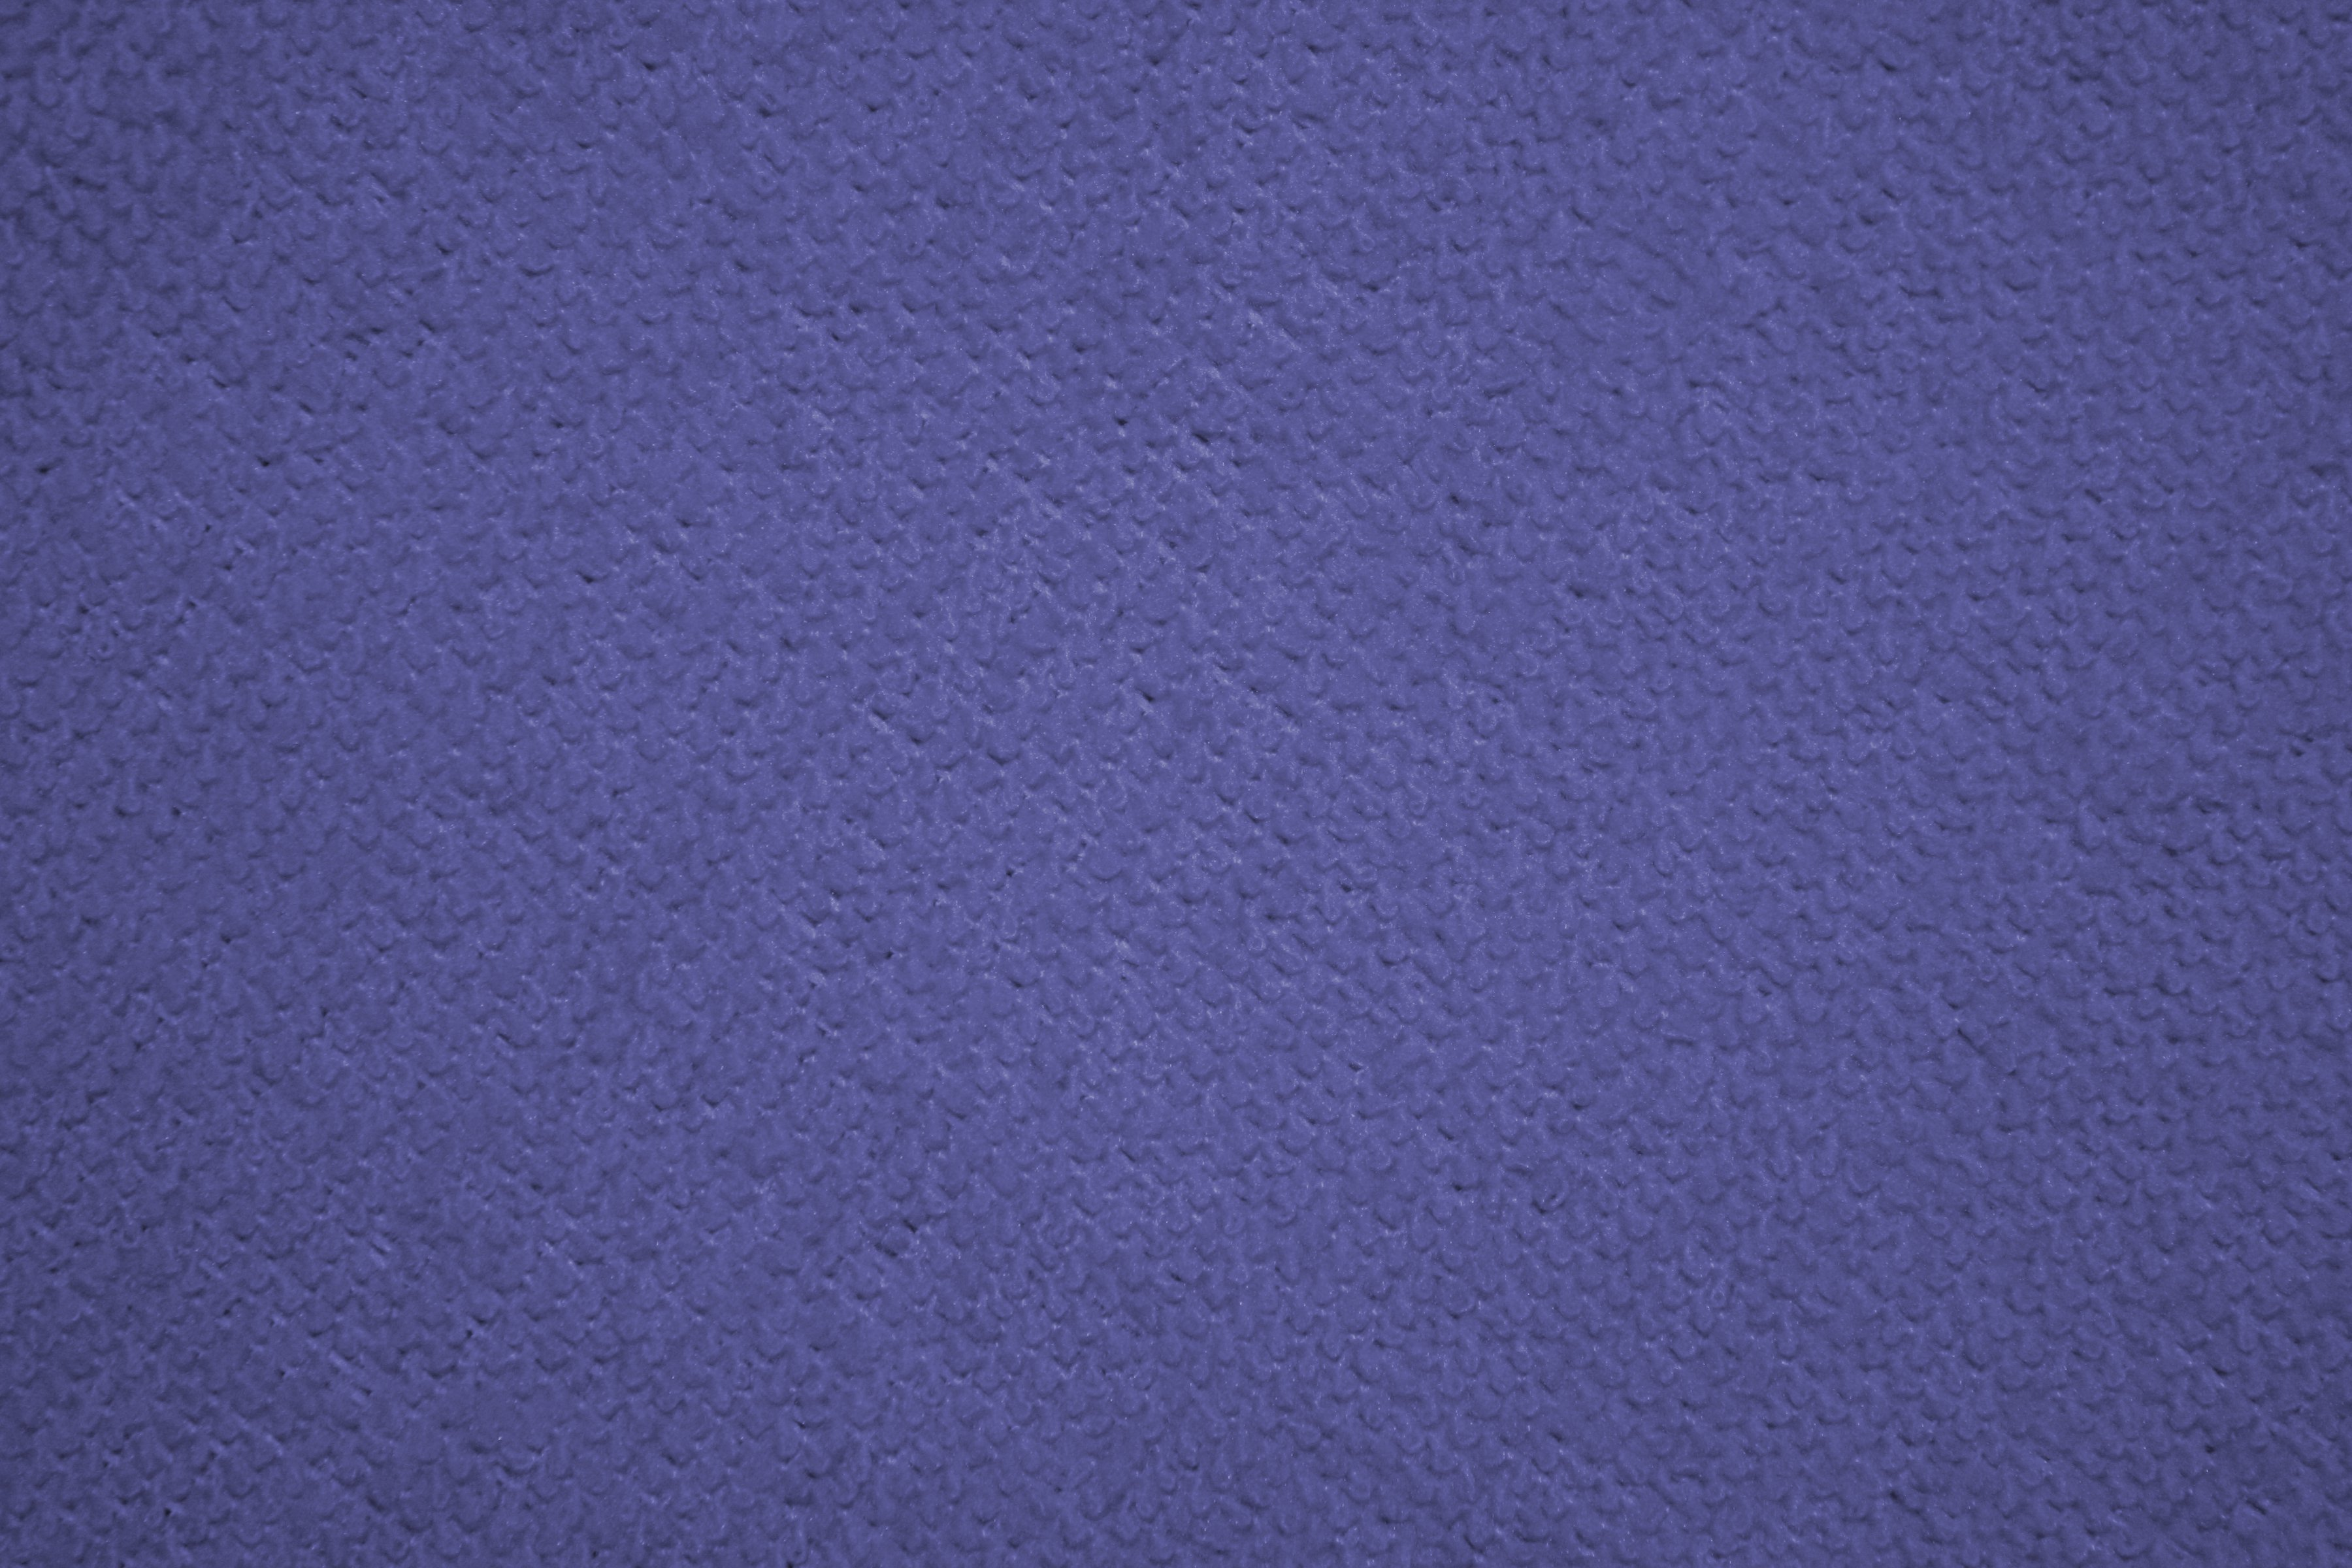 Blue Gray Microfiber Cloth Fabric Texture Picture | Free ...